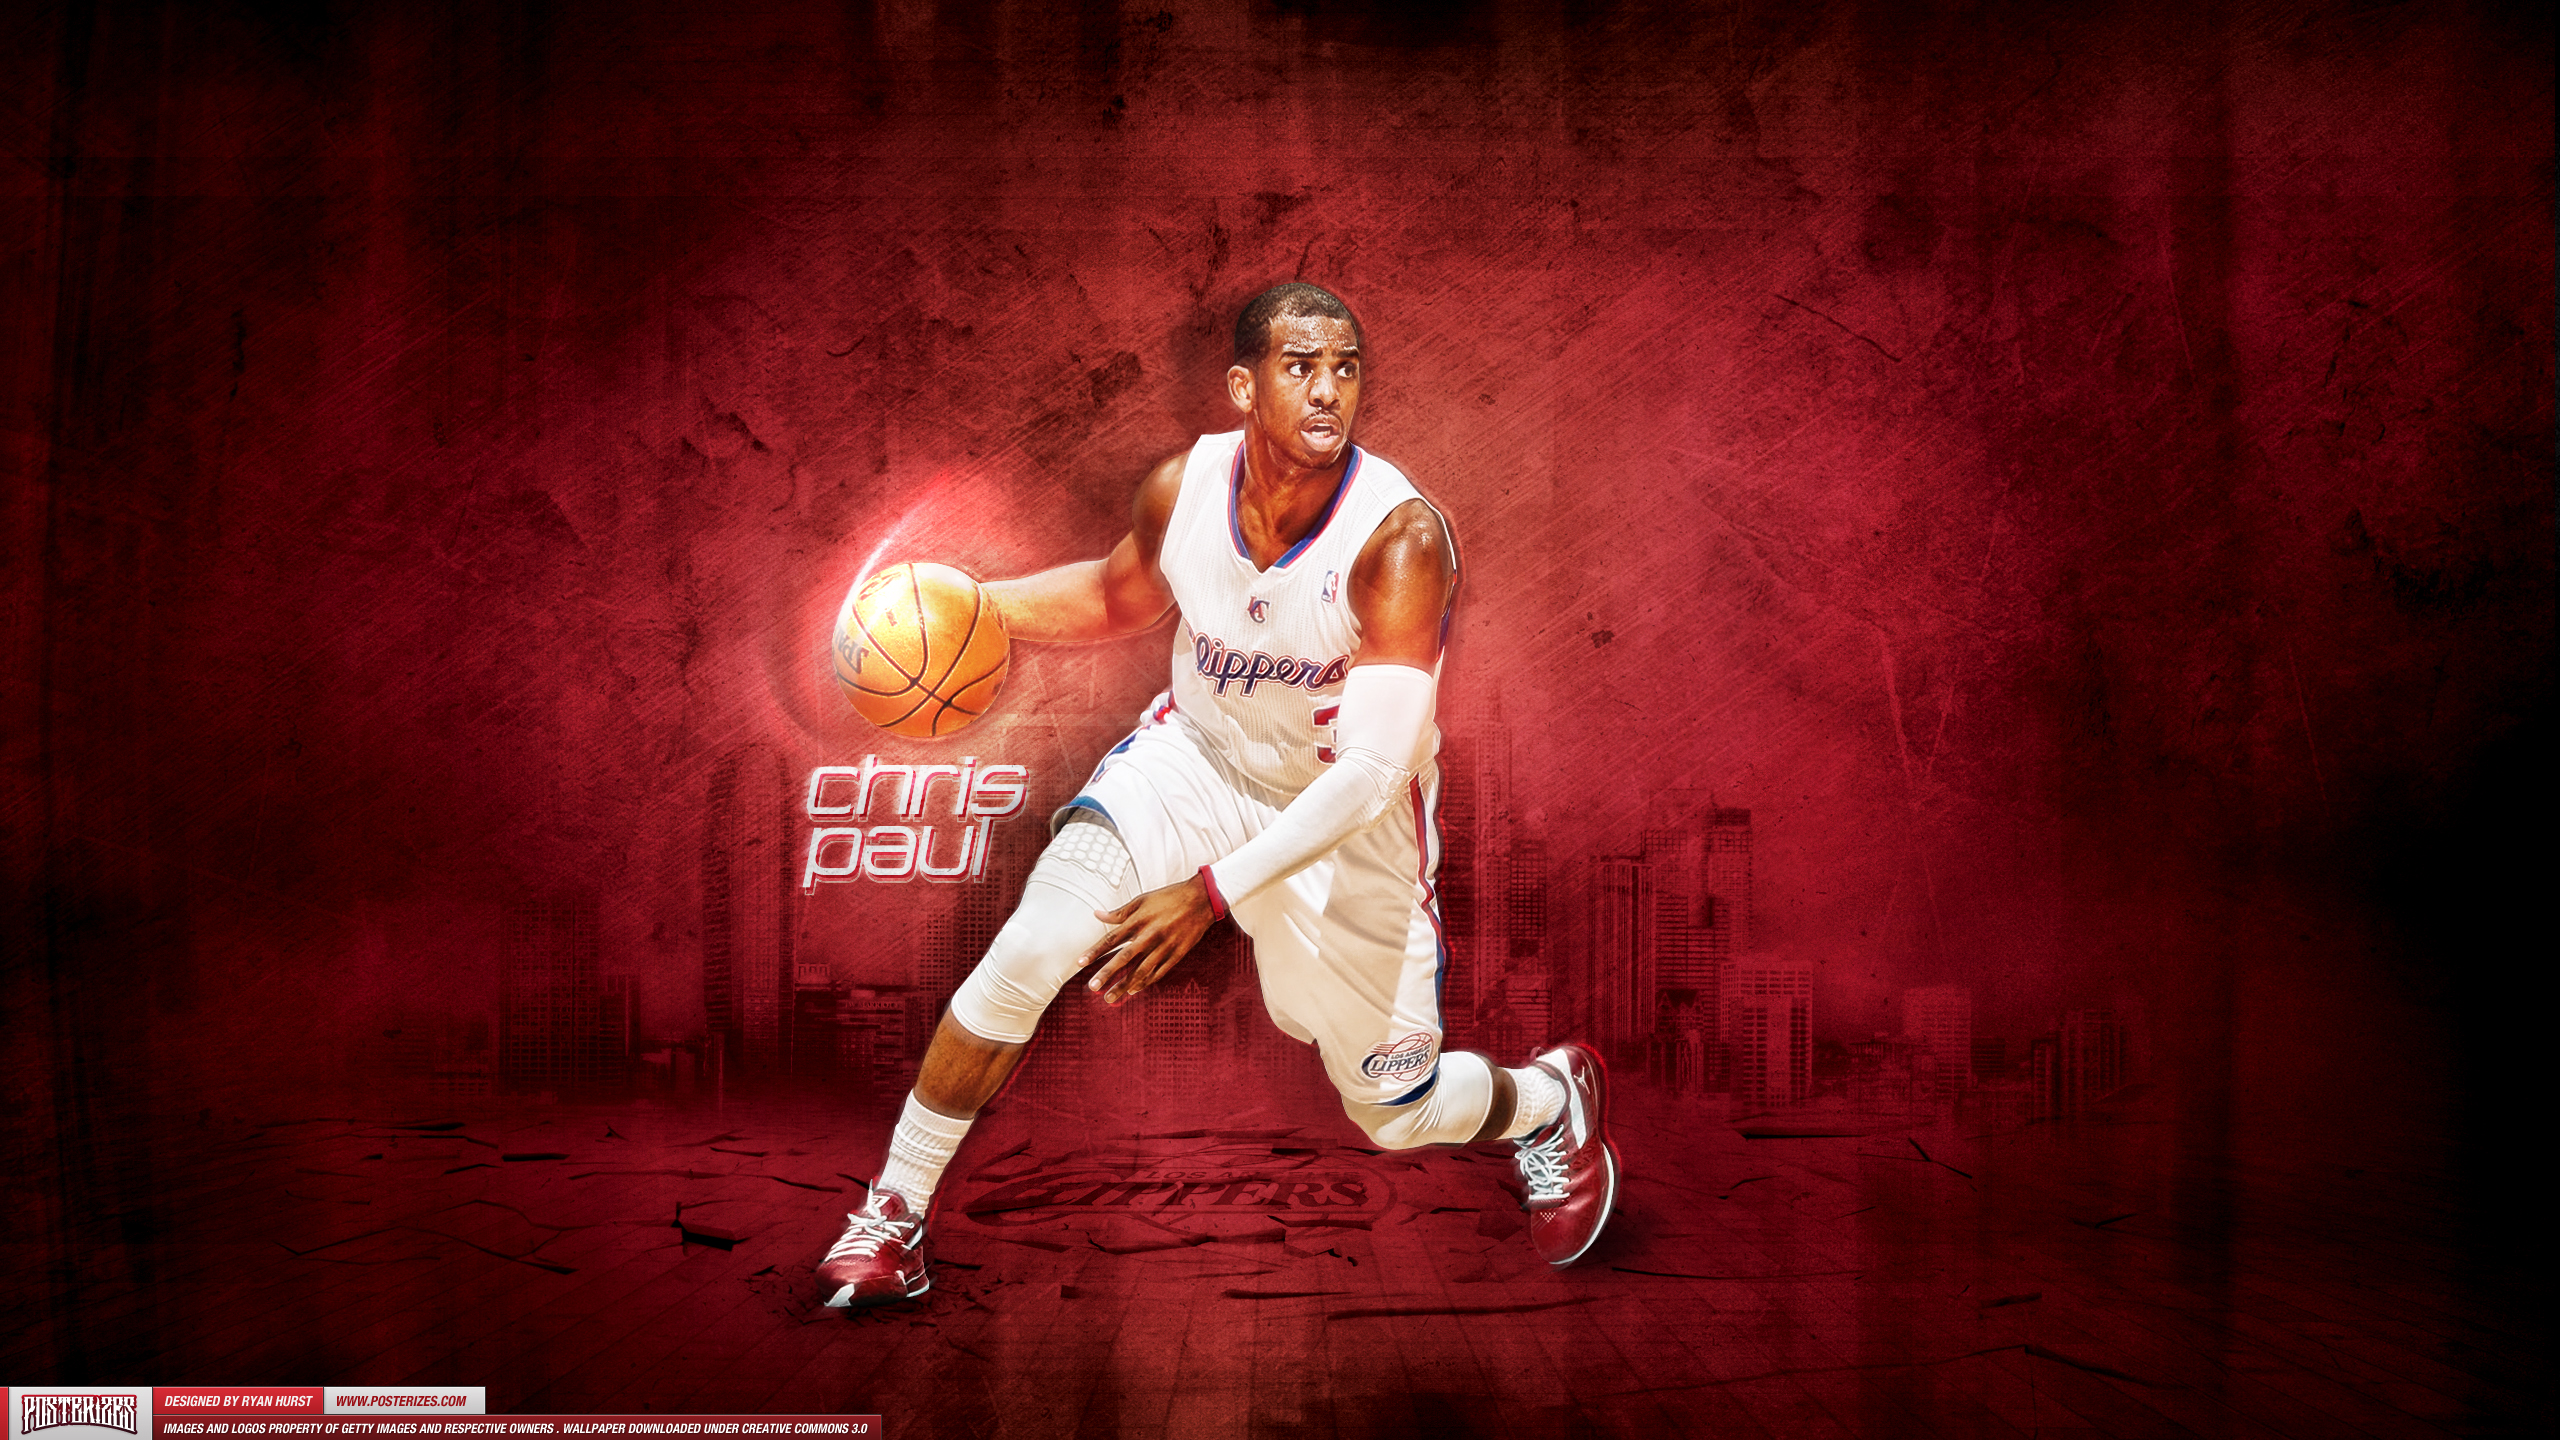 chris paul wallpapers full hd pictures